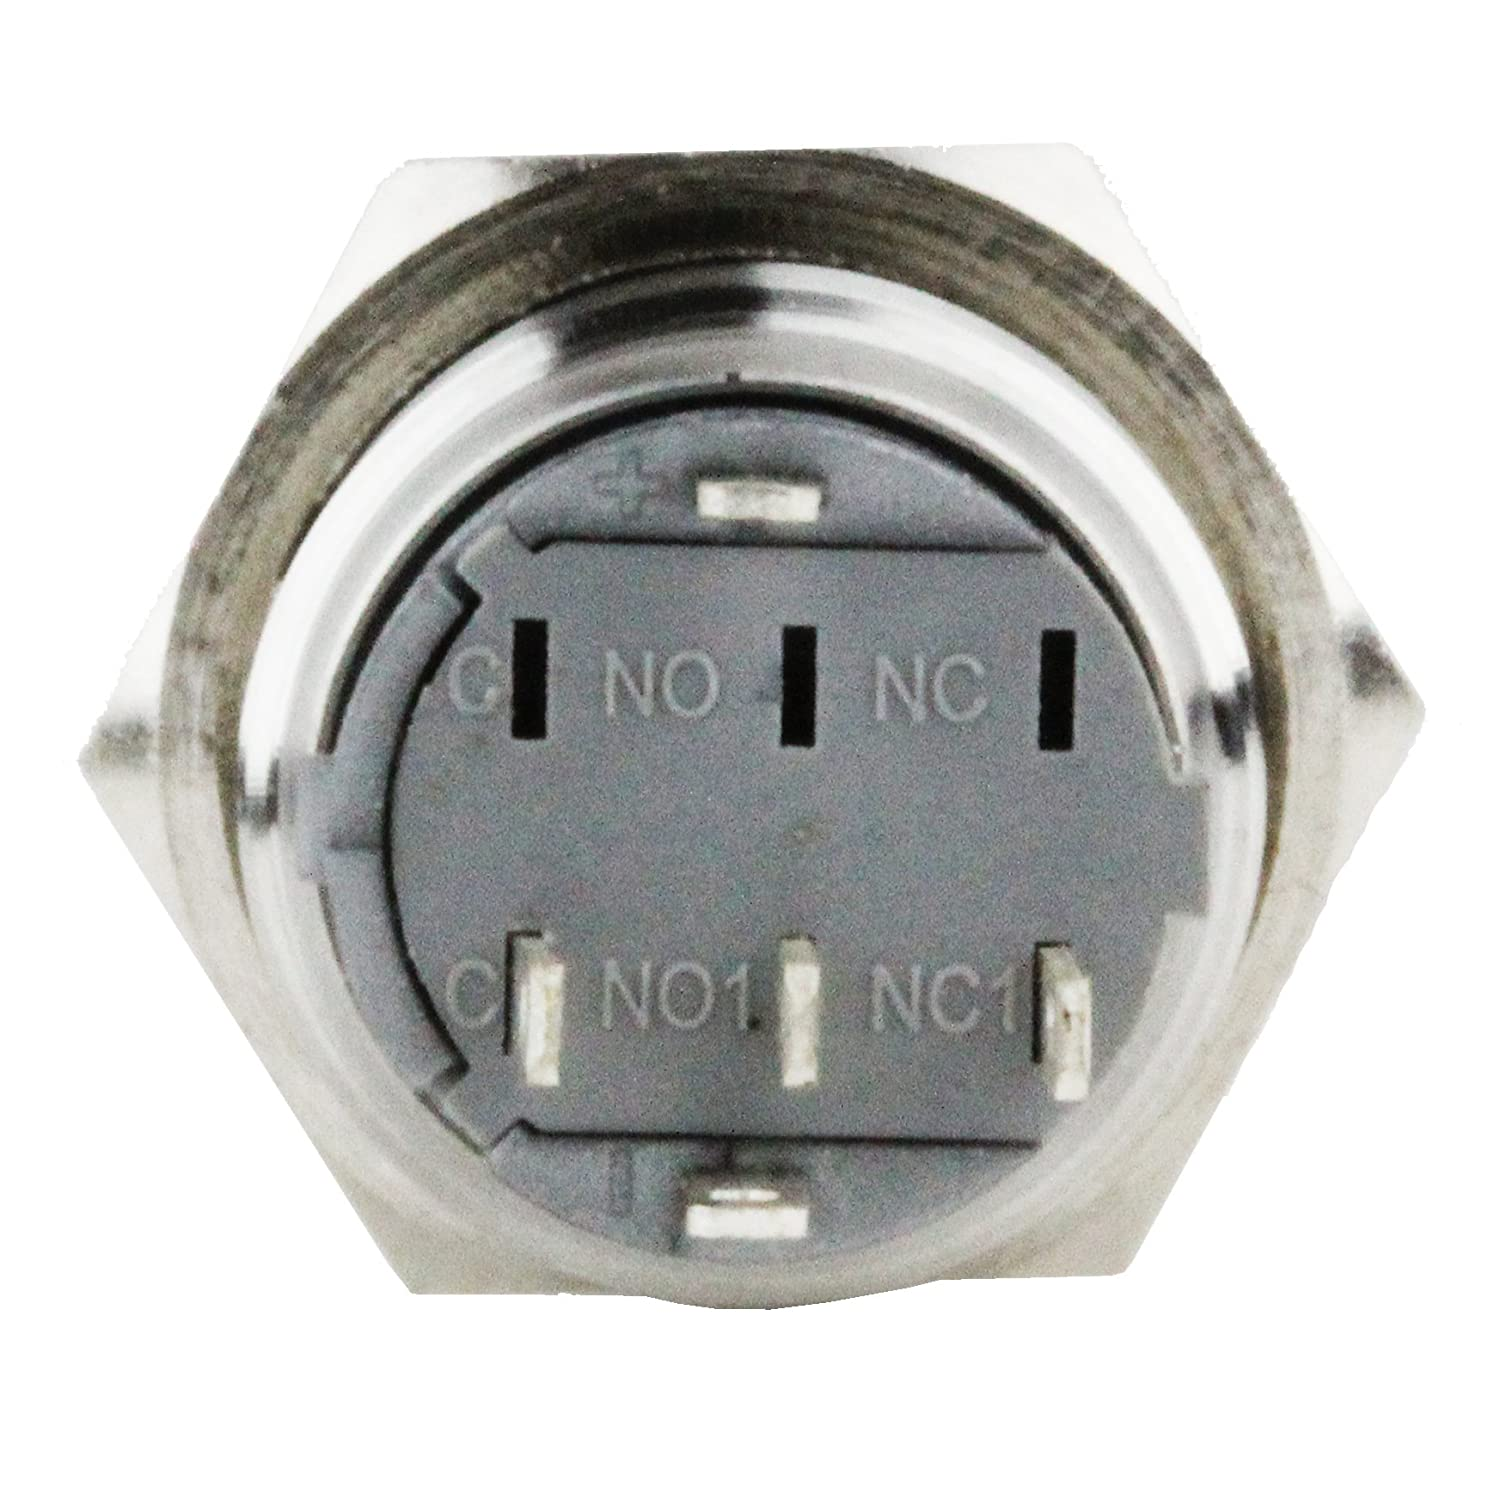 Splash Resistant 16mm Power Push Button On Off Latching Wiring A Lamp Switch W 12v Red Led Symbol Head From Us Solid Automotive